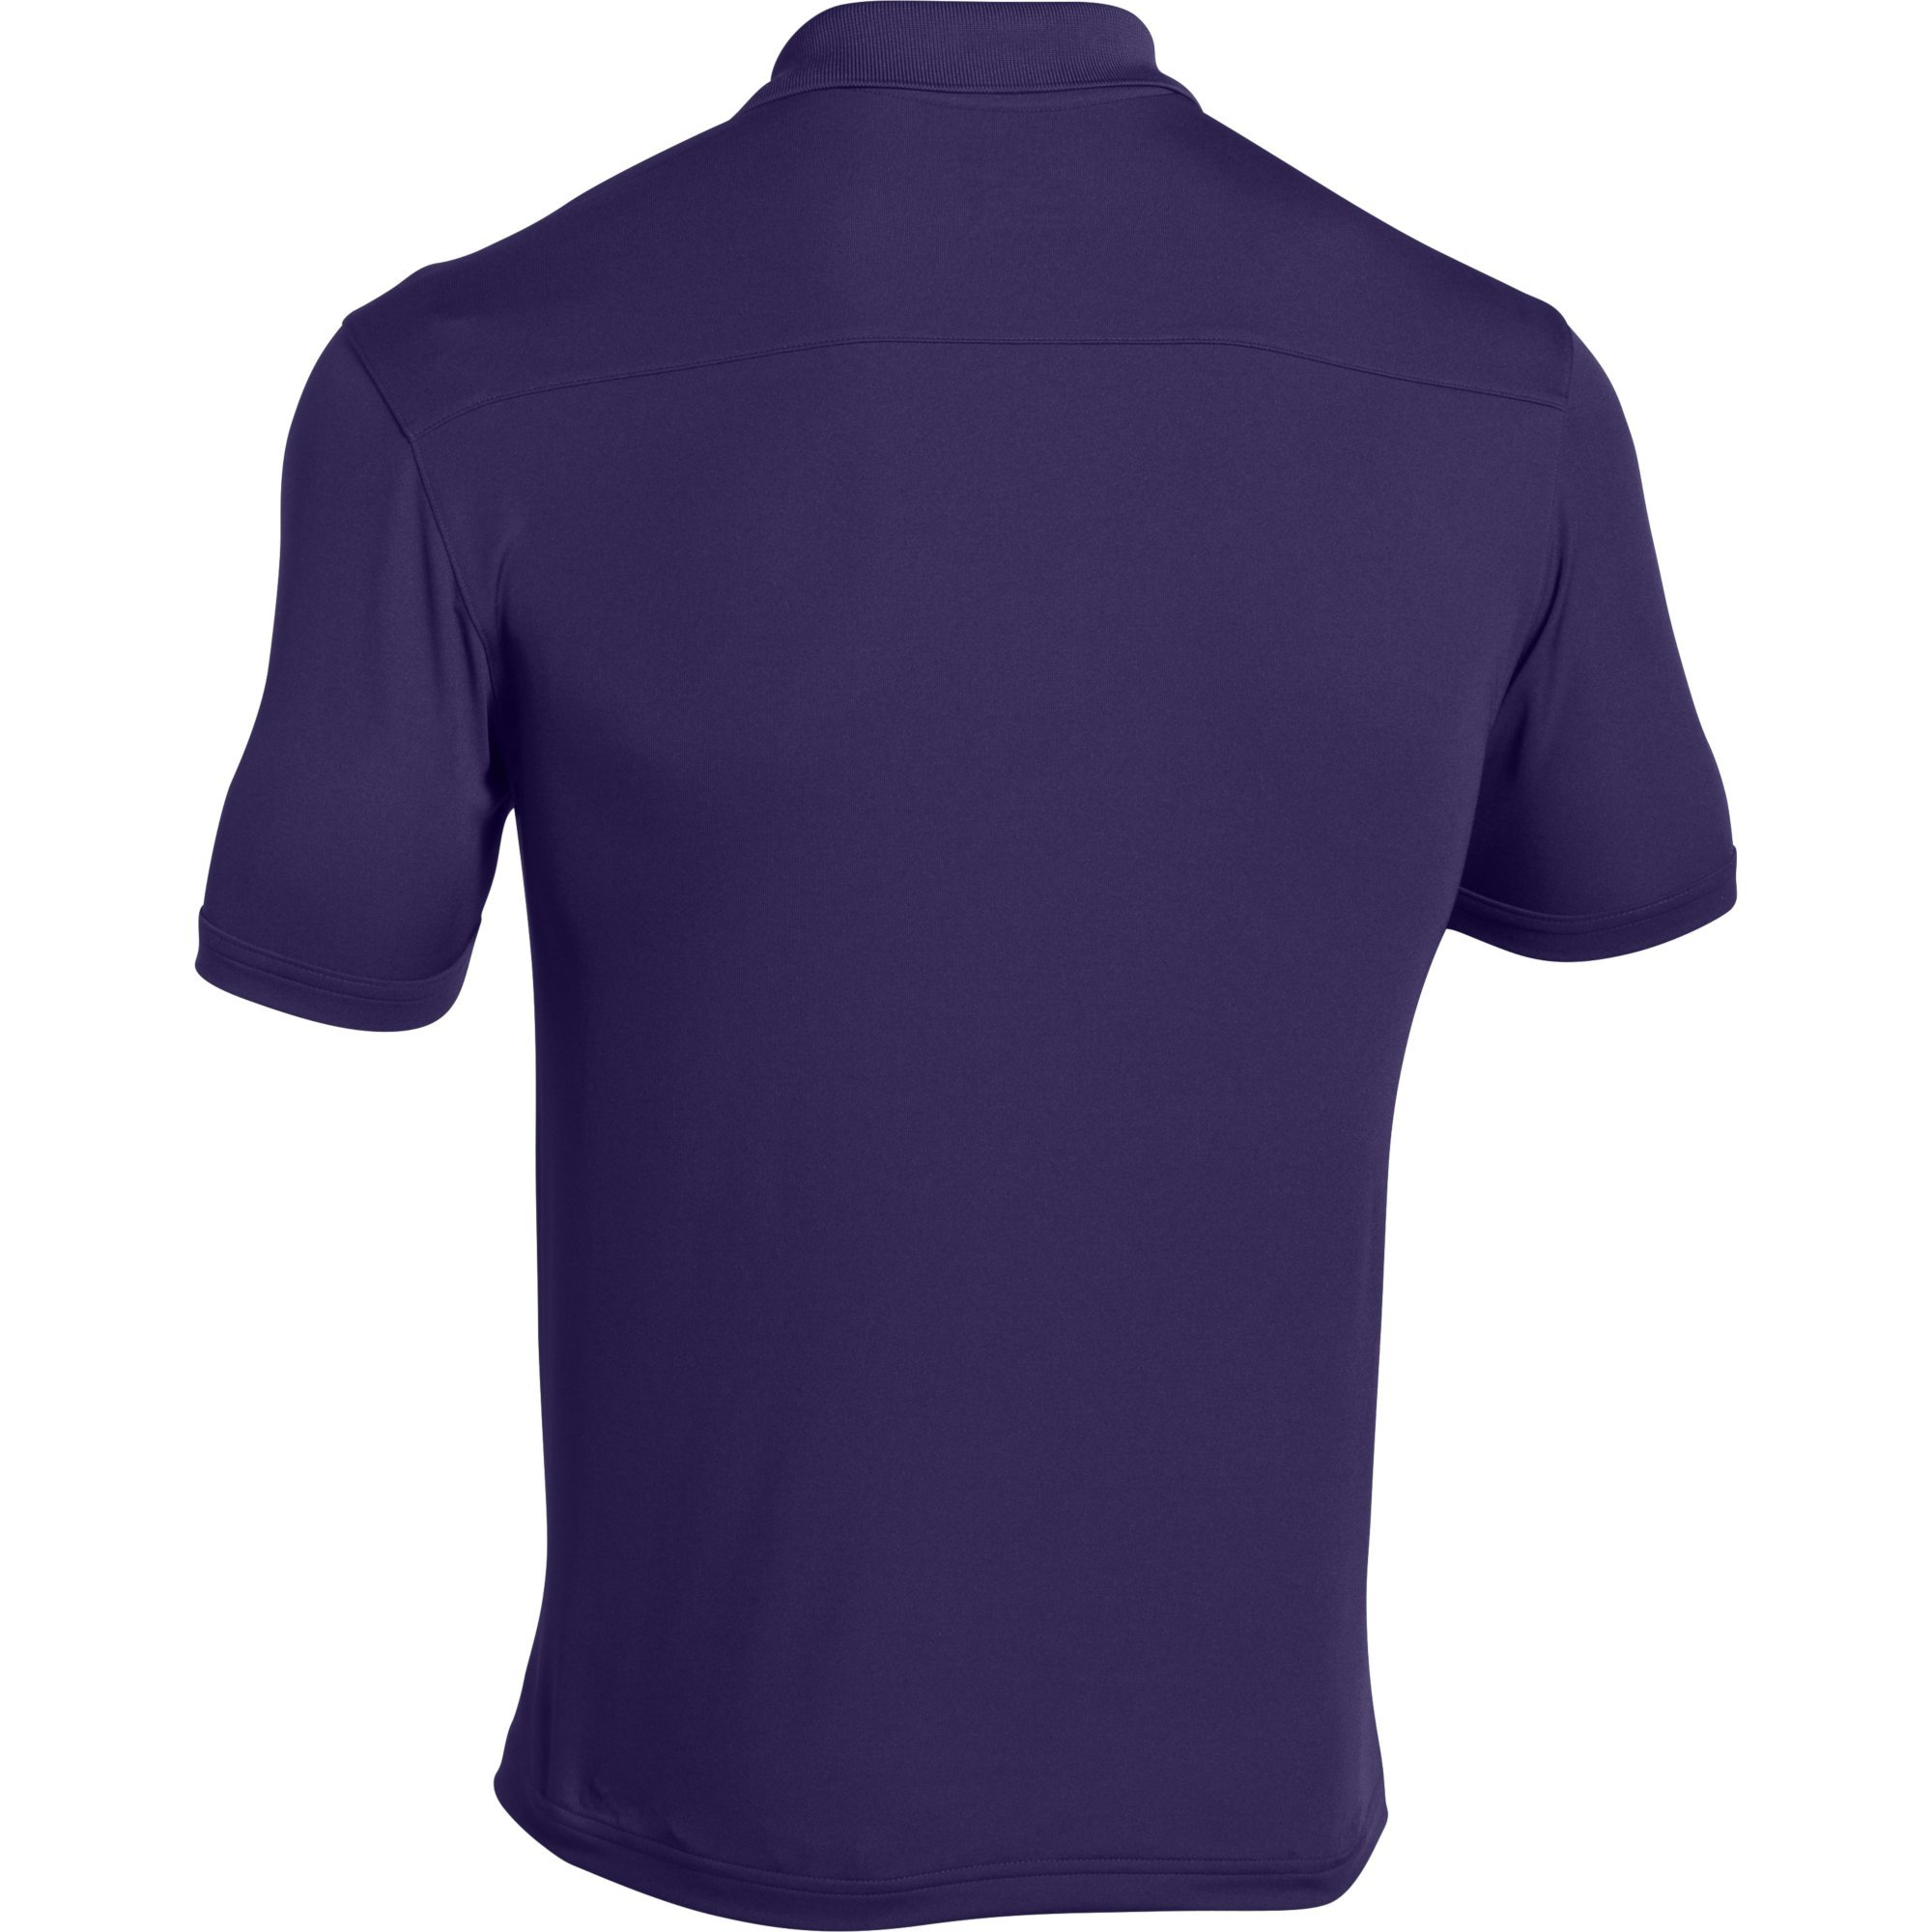 Under Armour Men's Team Armour Polo (4X-Large, Purple) by Under Armour (Image #2)